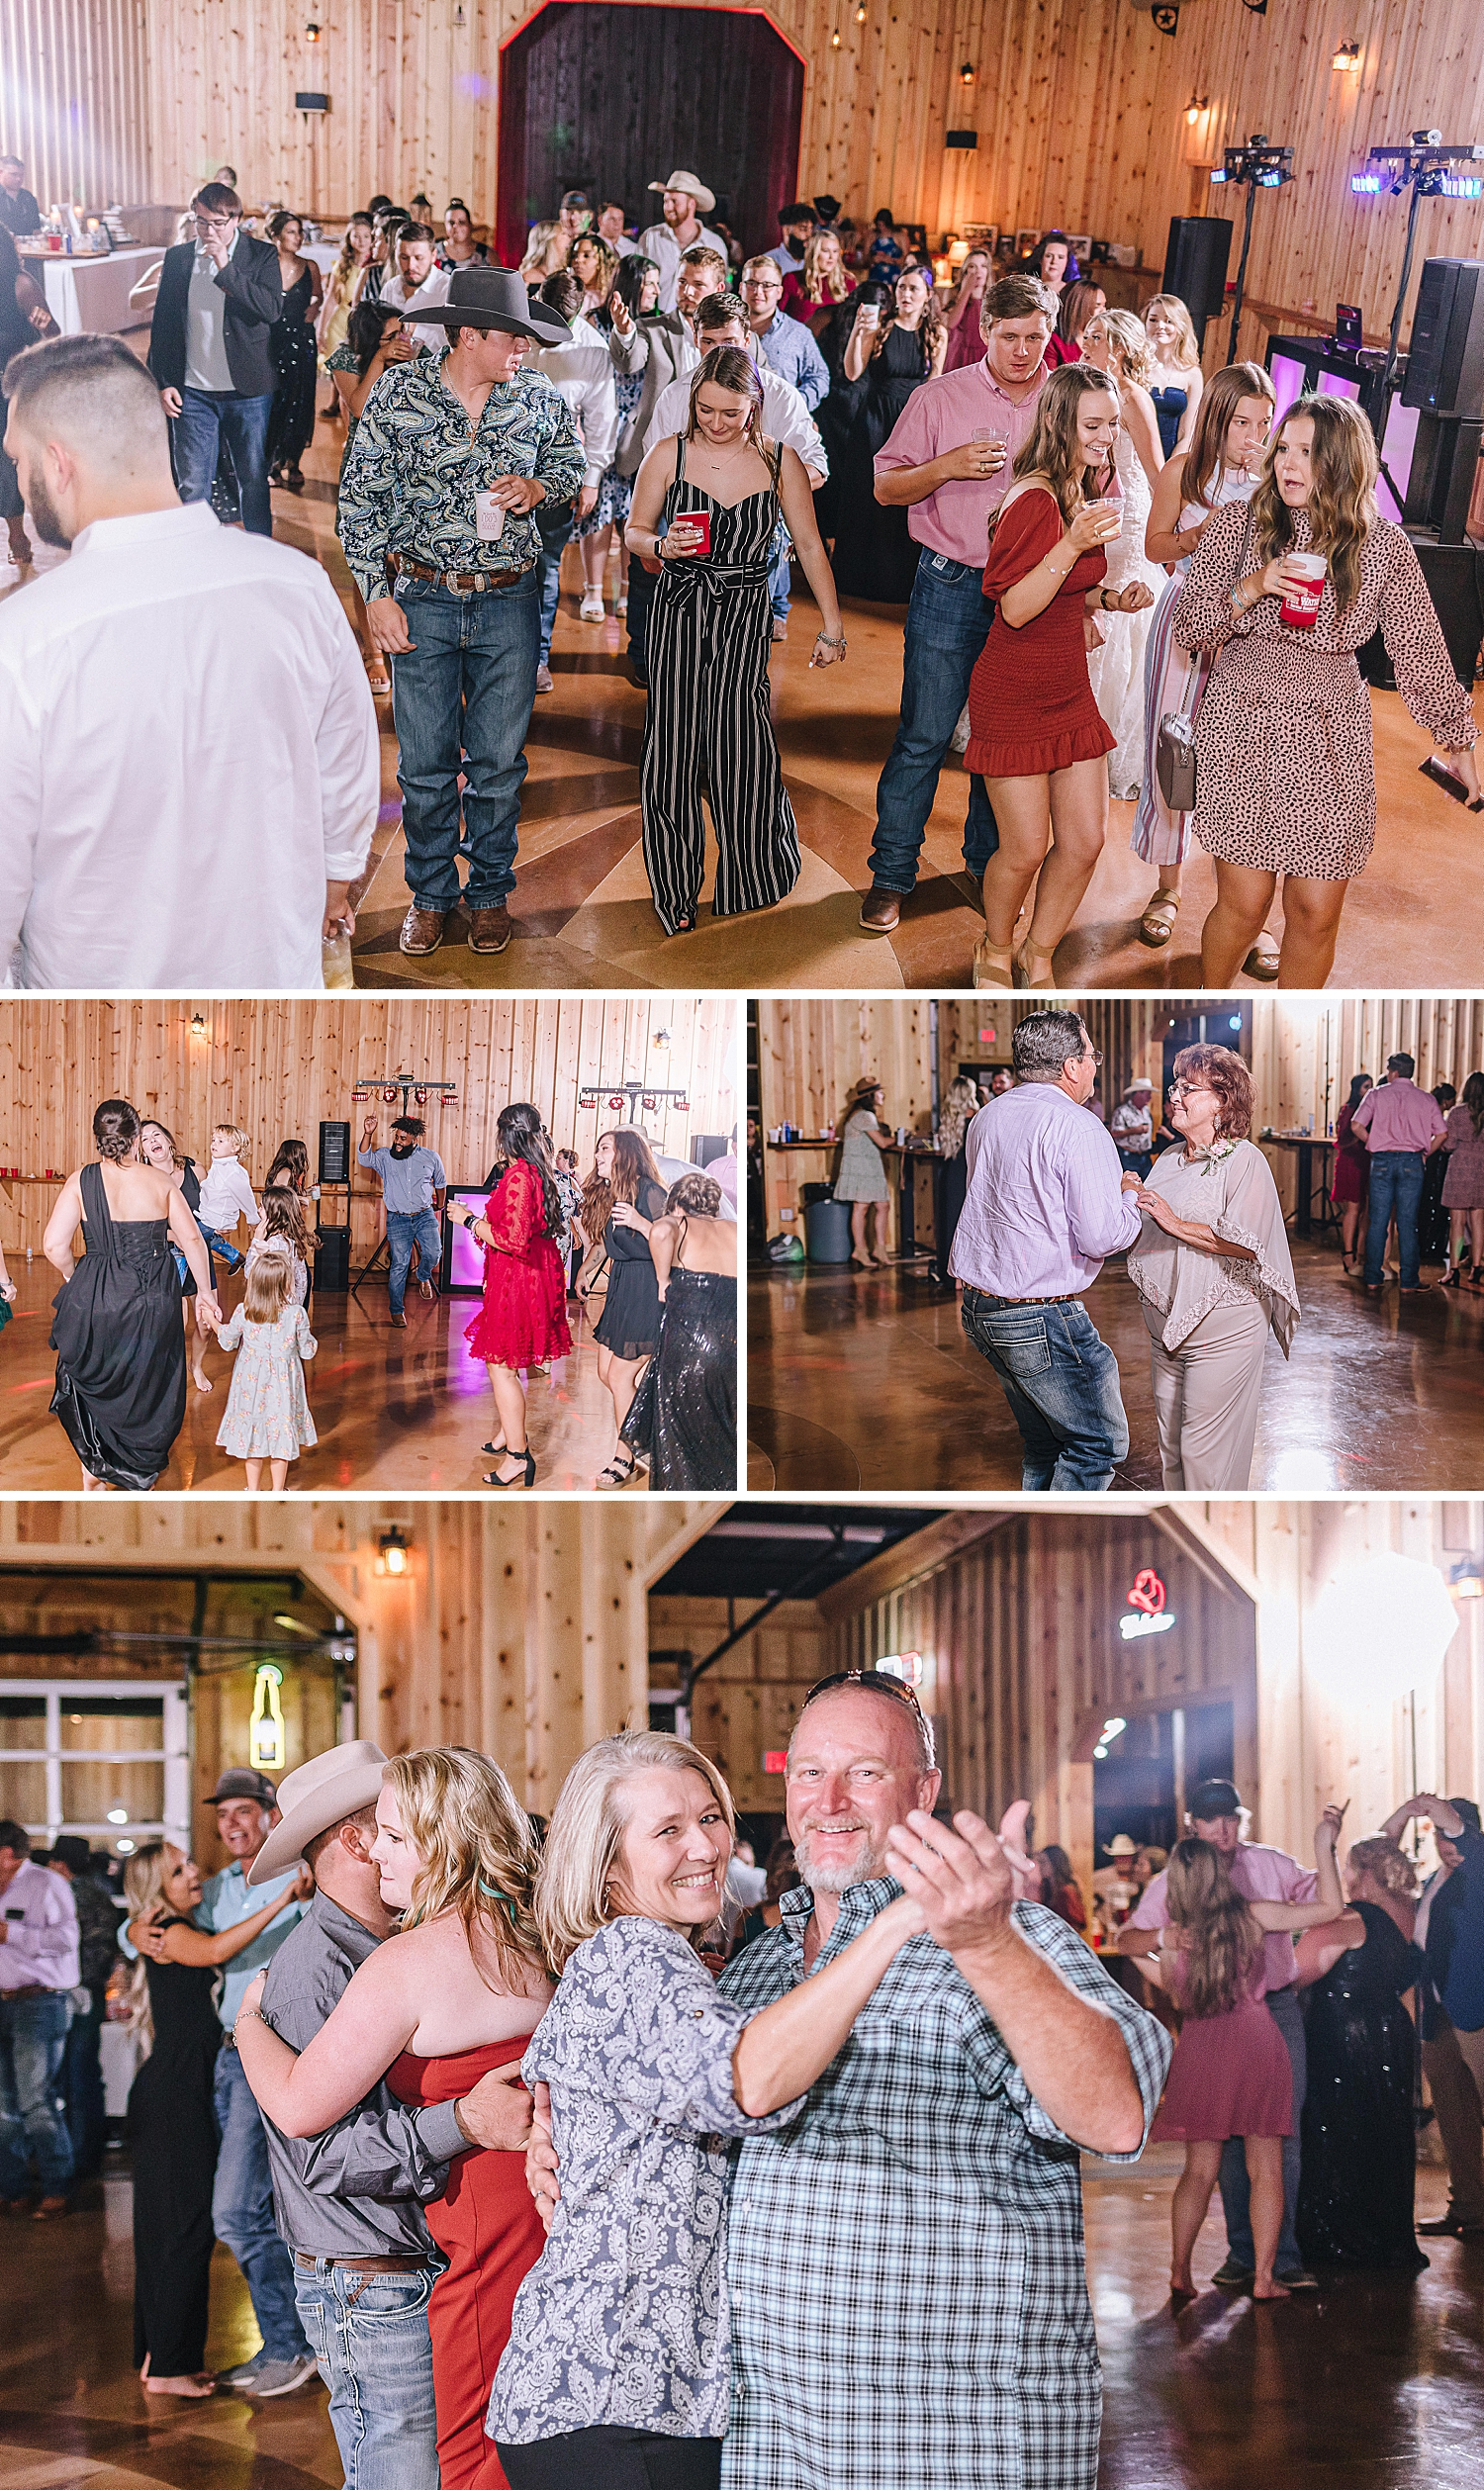 Rackler-Ranch-LaVernia-Texas-Wedding-Carly-Barton-Photography_0146.jpg